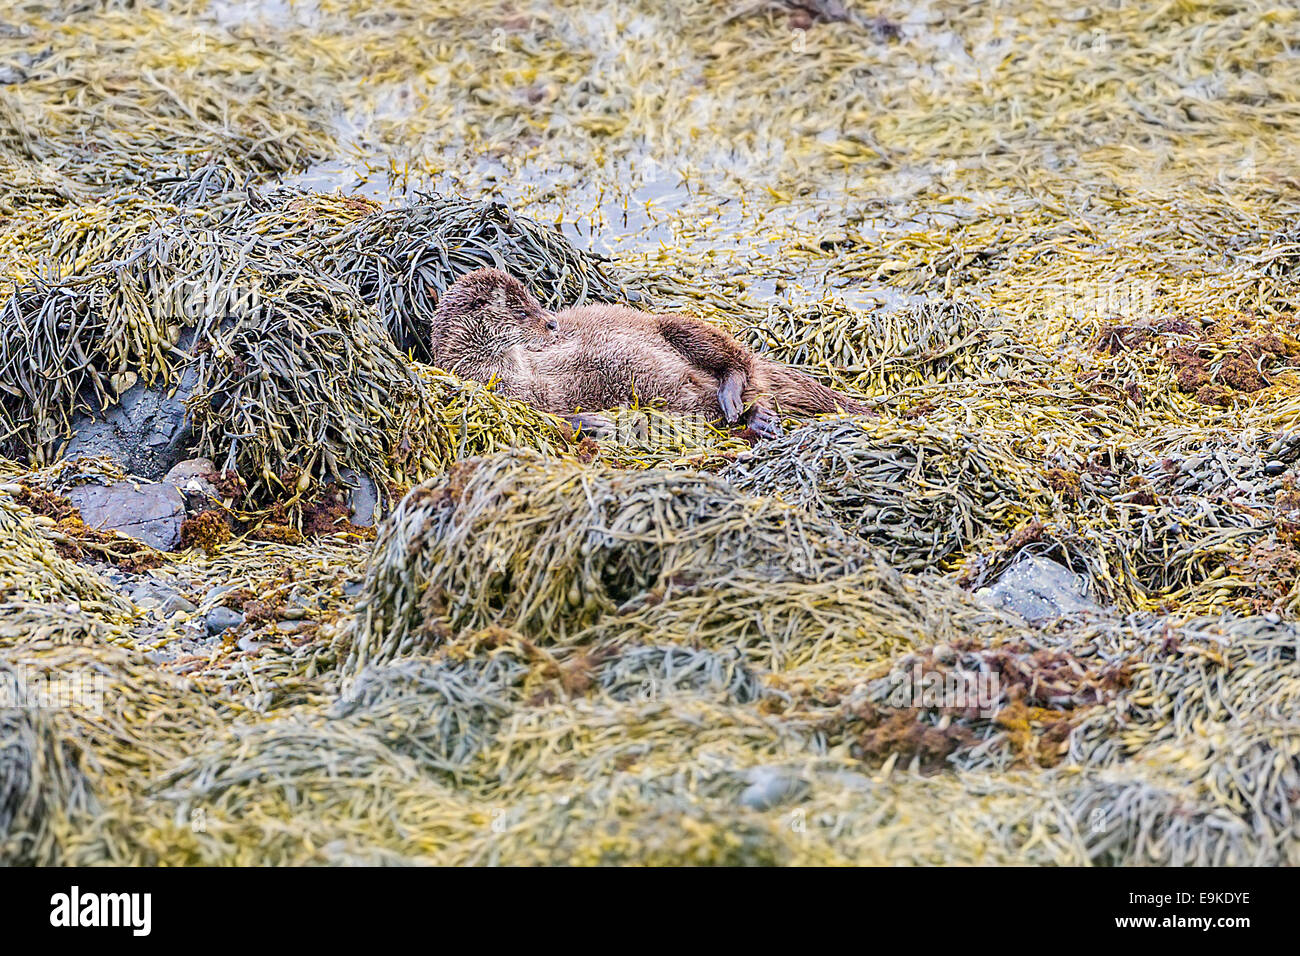 European otter resting on seaweed on the shore of a sea loch - Stock Image